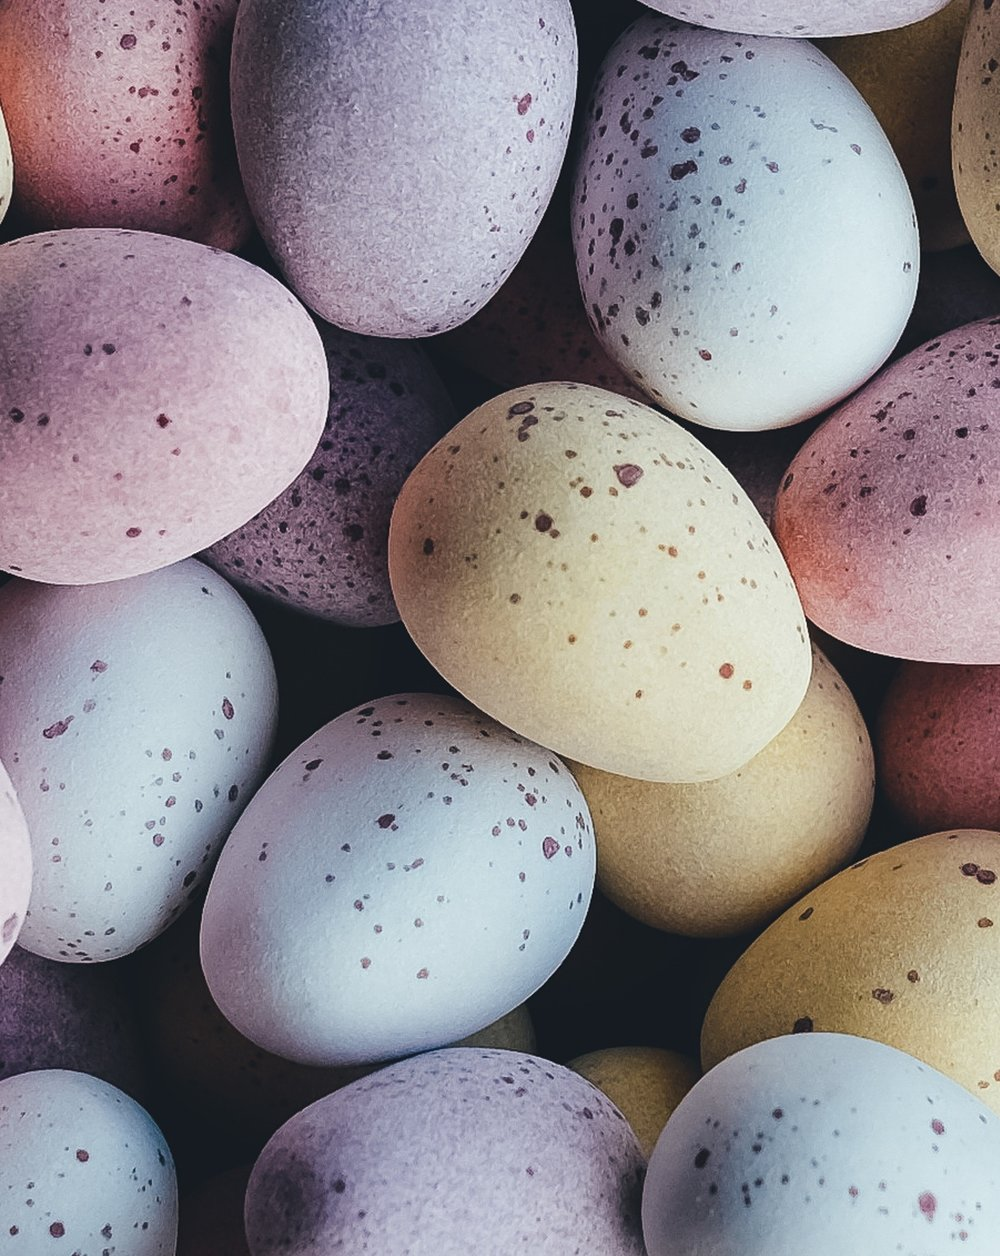 Pastels over Brights - Our readers prefer a traditional pastel color palette for their Easter decorations. However 37% of our Insiders will bock the traditional for a more bold color scheme, you go you rebels!